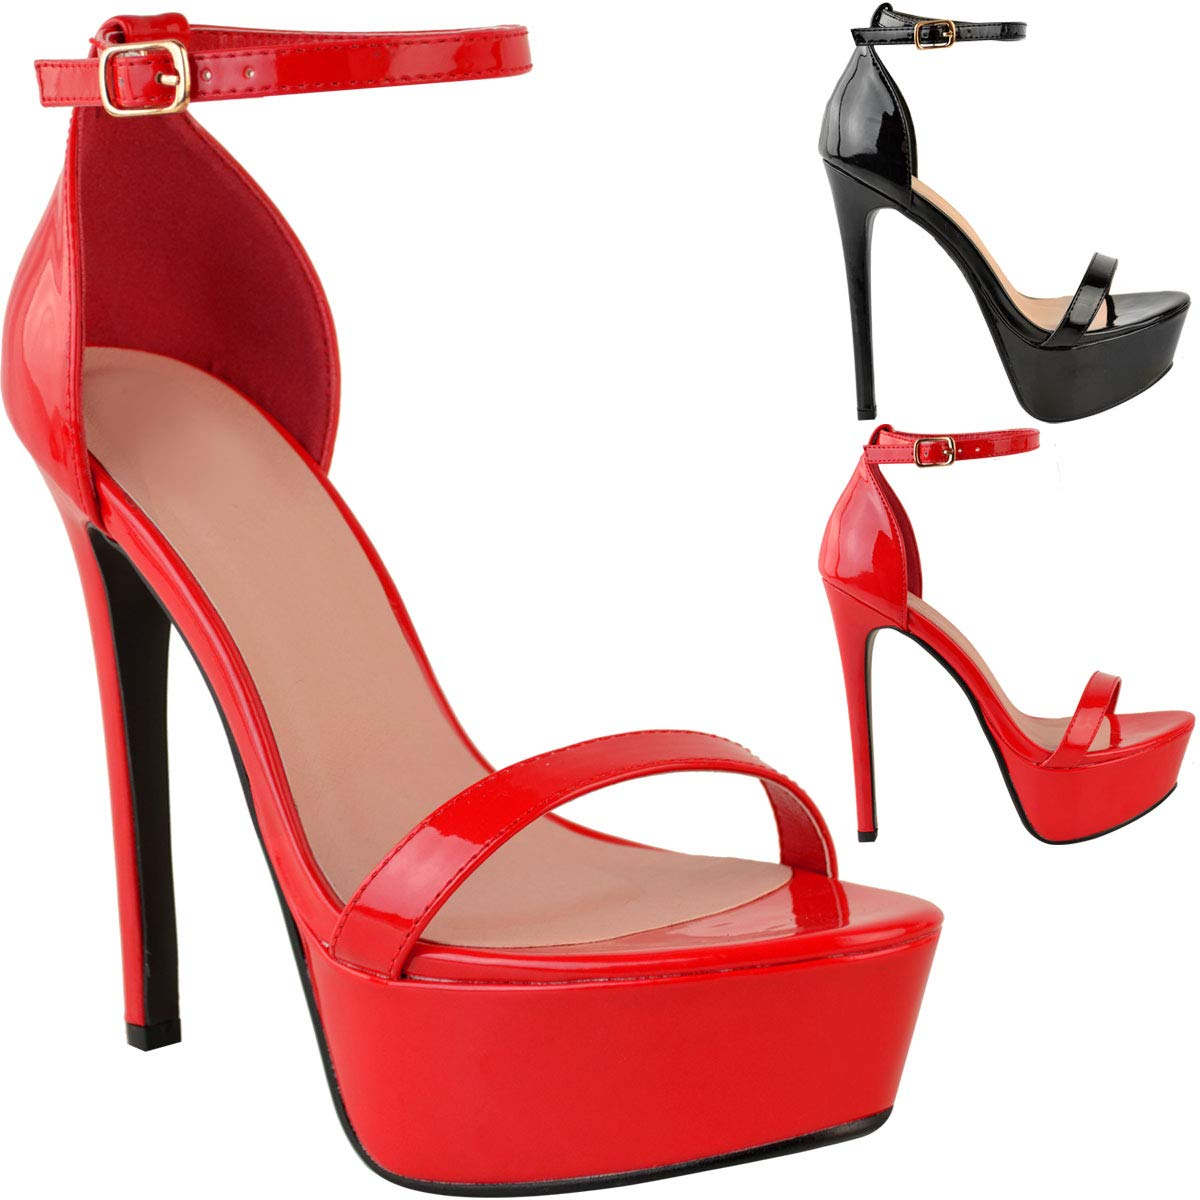 Red tswsq Womens Ladies Platform High Heel Stiletto Sandals Sexy Party Prom shoes New Size